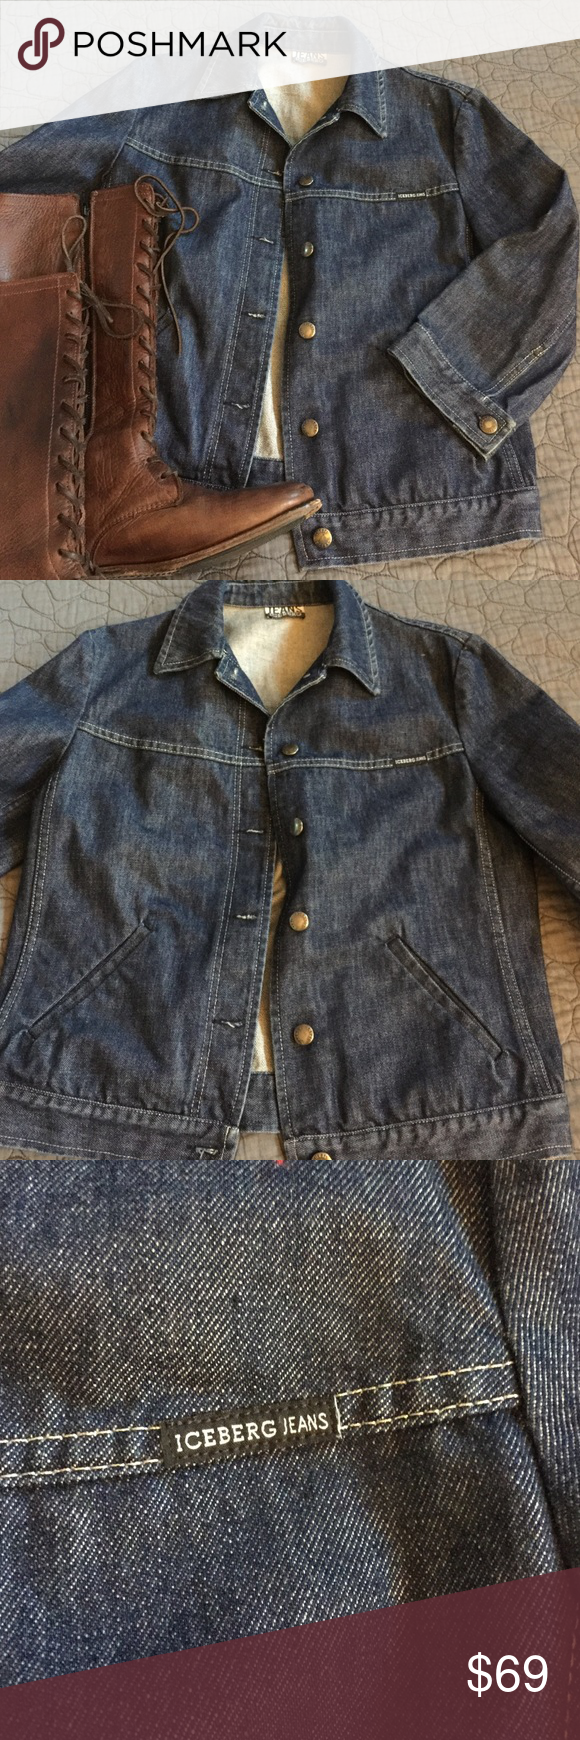 Iceberg Jean Jacket Made In Italy Iceberg Jeans Clothes Design Jean Jacket [ 1740 x 580 Pixel ]